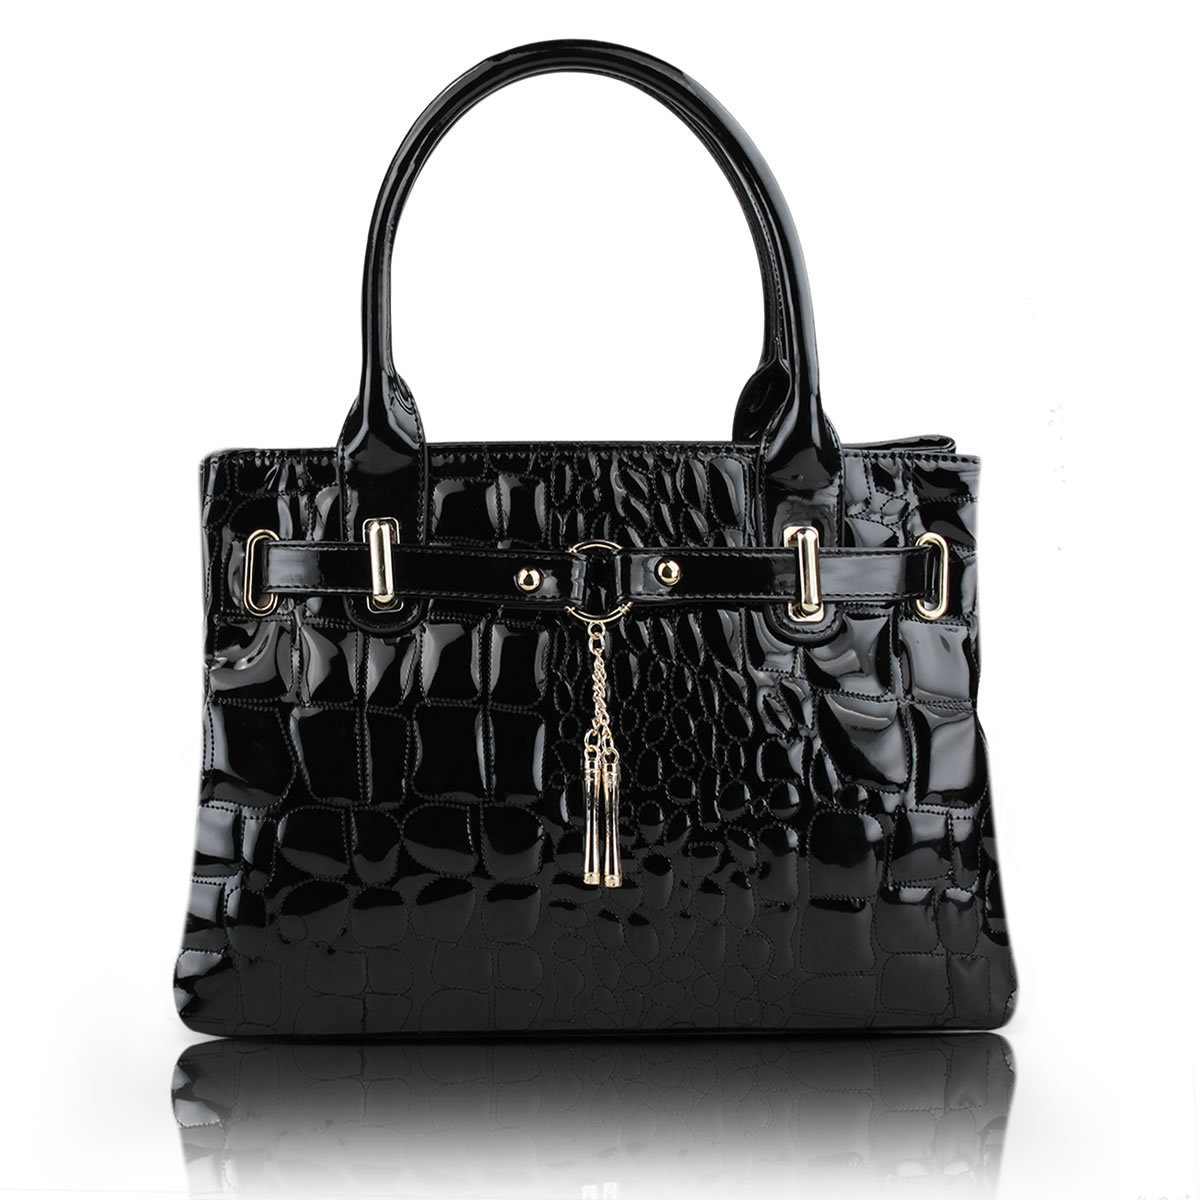 From totes to clutches, Barneys New York offers an impressive selection of designer bags, including Balenciaga, Givenchy, Fendi, Valentino, and Saint Laurent.